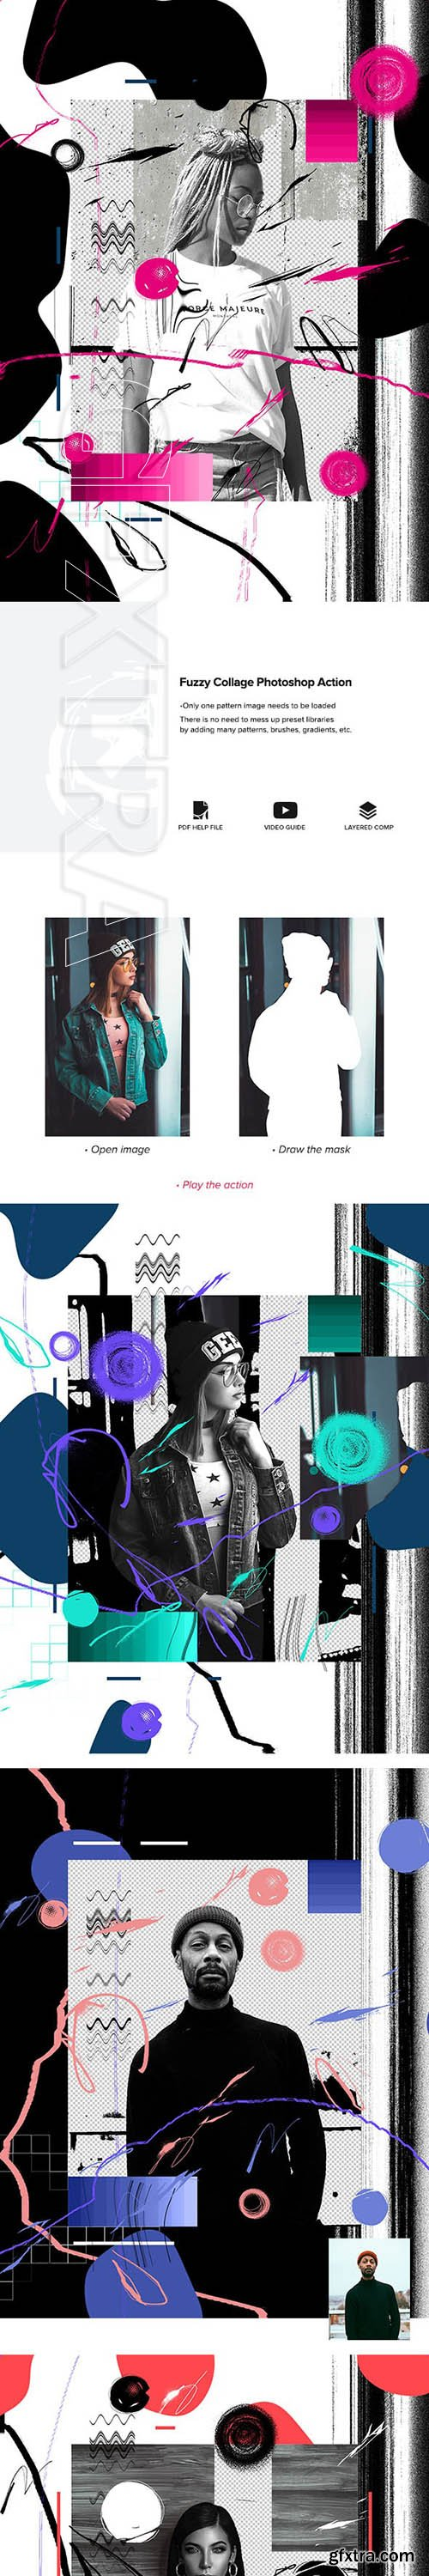 GraphicRiver - Fuzzy Collage Photoshop Action 24577994